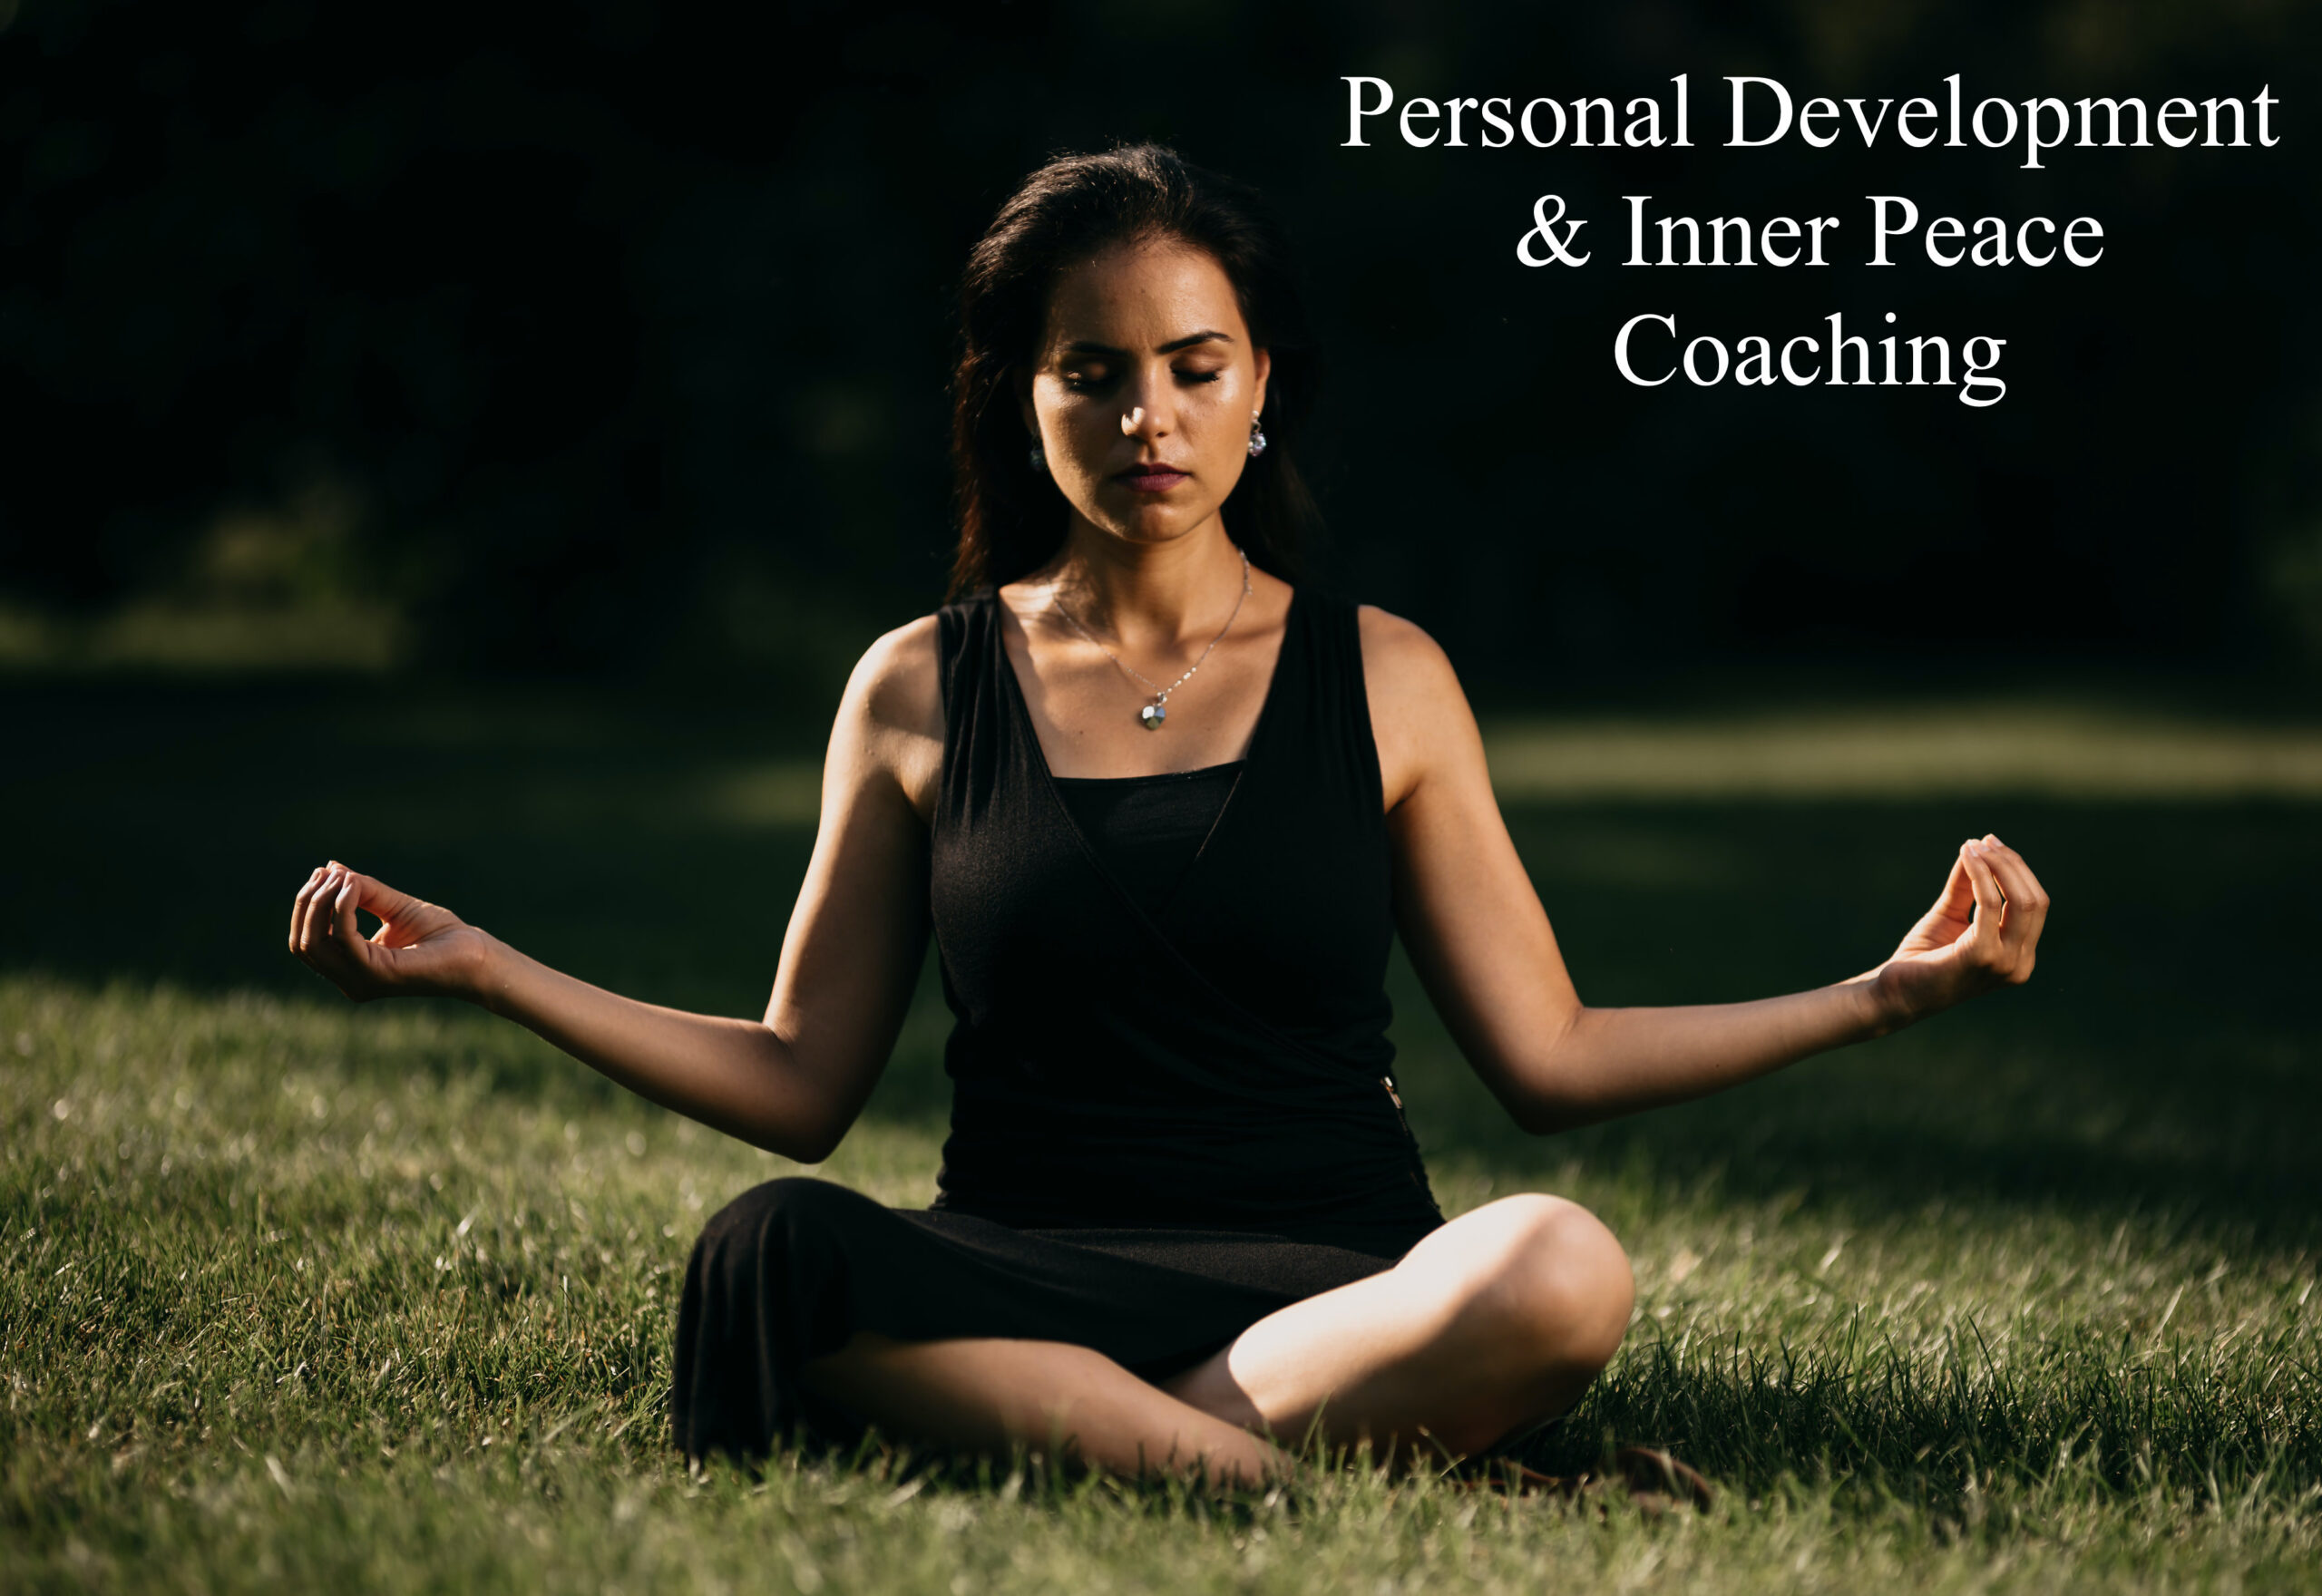 Personal Development Coaching in South Windsor, CT, Hartford County, Connecticut (formerly in Kew Gardens, Queens, New York City, New York, NY), and on the phone or online anywhere. South Windsor, CT, Hartford County, Connecticut Life Coach and Queens, New York Life Coach Ninette. Contact to speak with a Life Coach, Relationship Coach, Career Coach and Spirituality Coach in South Windsor, CT, Hartford County, Connecticut, CT (formerly in Kew Gardens, Queens, New York, NY), who offers life coaching, relationship coaching, career coaching and spirituality coaching in South Windsor, CT, Hartford County, Connecticut, CT and over the phone or online anywhere. Coaching in English And Hebrew. Seeking a life coach, relationship coach, career coach, or spirituality coach in South Windsor, CT, Hartford County, Connecticut, CT (formerly in Kew Gardens, Queens, New York, NY)? Contact South Windsor, CT, Hartford County, Connecticut Life Coach, Relationship Coach, Career Coach, and Spirituality Coach and Kew Gardens, Queens, New York Life Coach, Relationship Coach, Career Coach and Spirituality Coach Ninette for life coaching, relationship coaching, career coaching, and spirituality coaching in South Windsor, CT, Hartford County, Connecticut, CT (formerly in Kew Gardens, Queens, New York City, New York, NY) or over the phone or online anywhere. Life Coach, Relationship Coach, Career Coach and Spirituality Coach in South Windsor, CT, Hartford County, Connecticut, formerly in Kew Gardens, Queens, New York City, New York, NY, providing life coaching, relationship coaching, career coaching and spirituality coaching in South Windsor, CT, Hartford County, Connecticut, Kew Gardens, Queens, New York City, New York, NY, and over the phone or online anywhere. If you're seeking life coaching, relationship coaching, career coaching, or spirituality coaching in South Windsor, CT, Hartford County, Connecticut or Kew Gardens, Queens, New York City, New York, NY, contact South Windsor, CT, Hartf